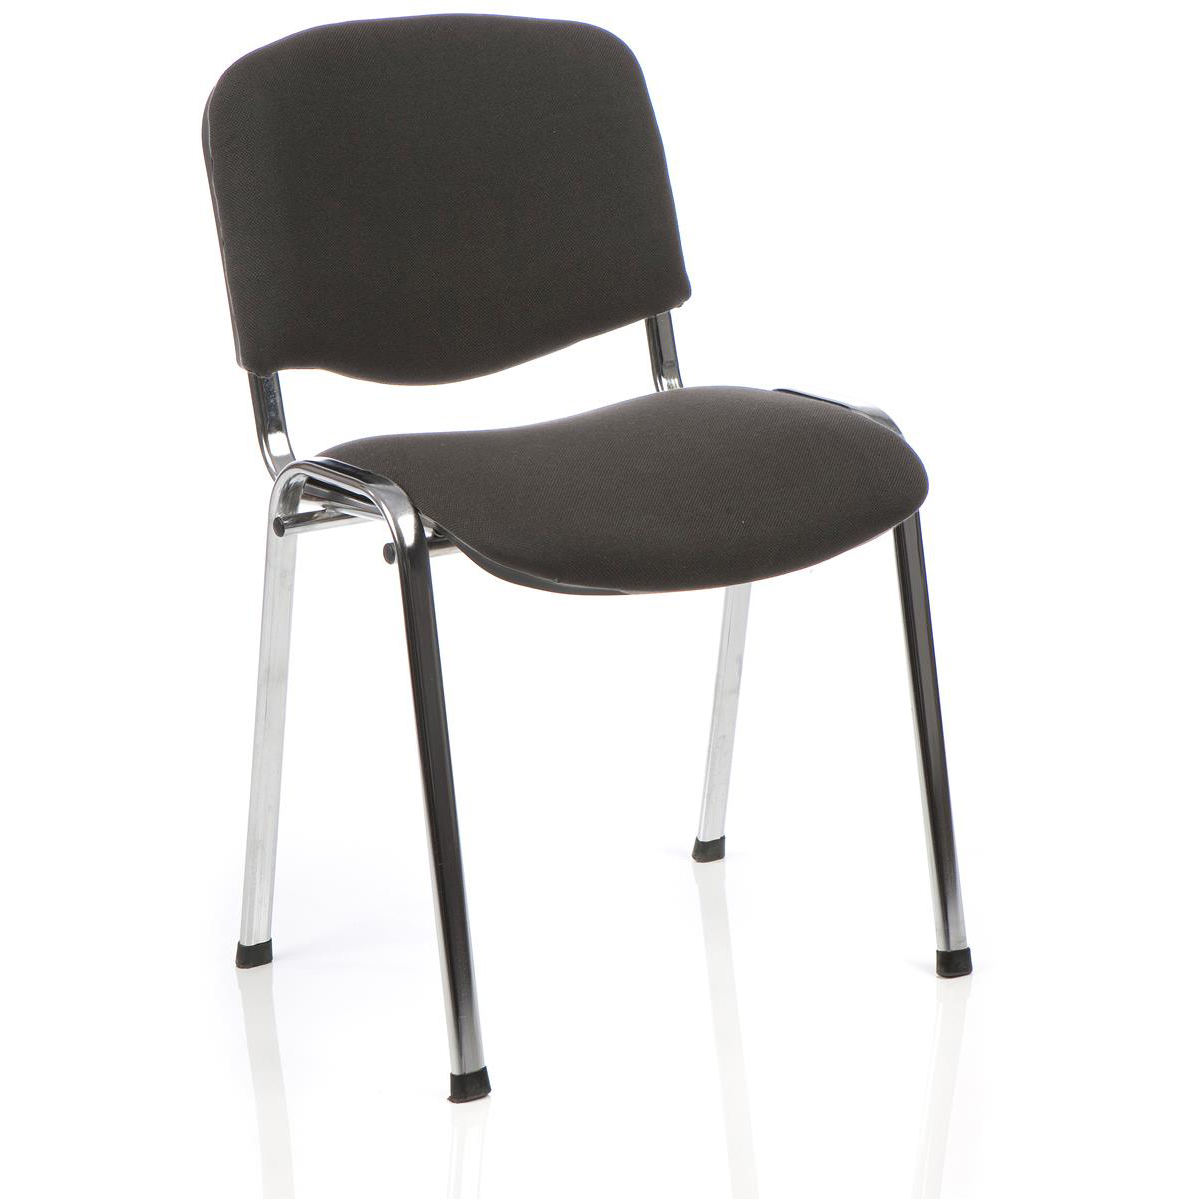 &Trexus Stacking Chair Chrome Frame Charcoal 480x420x500mm Ref BR000069